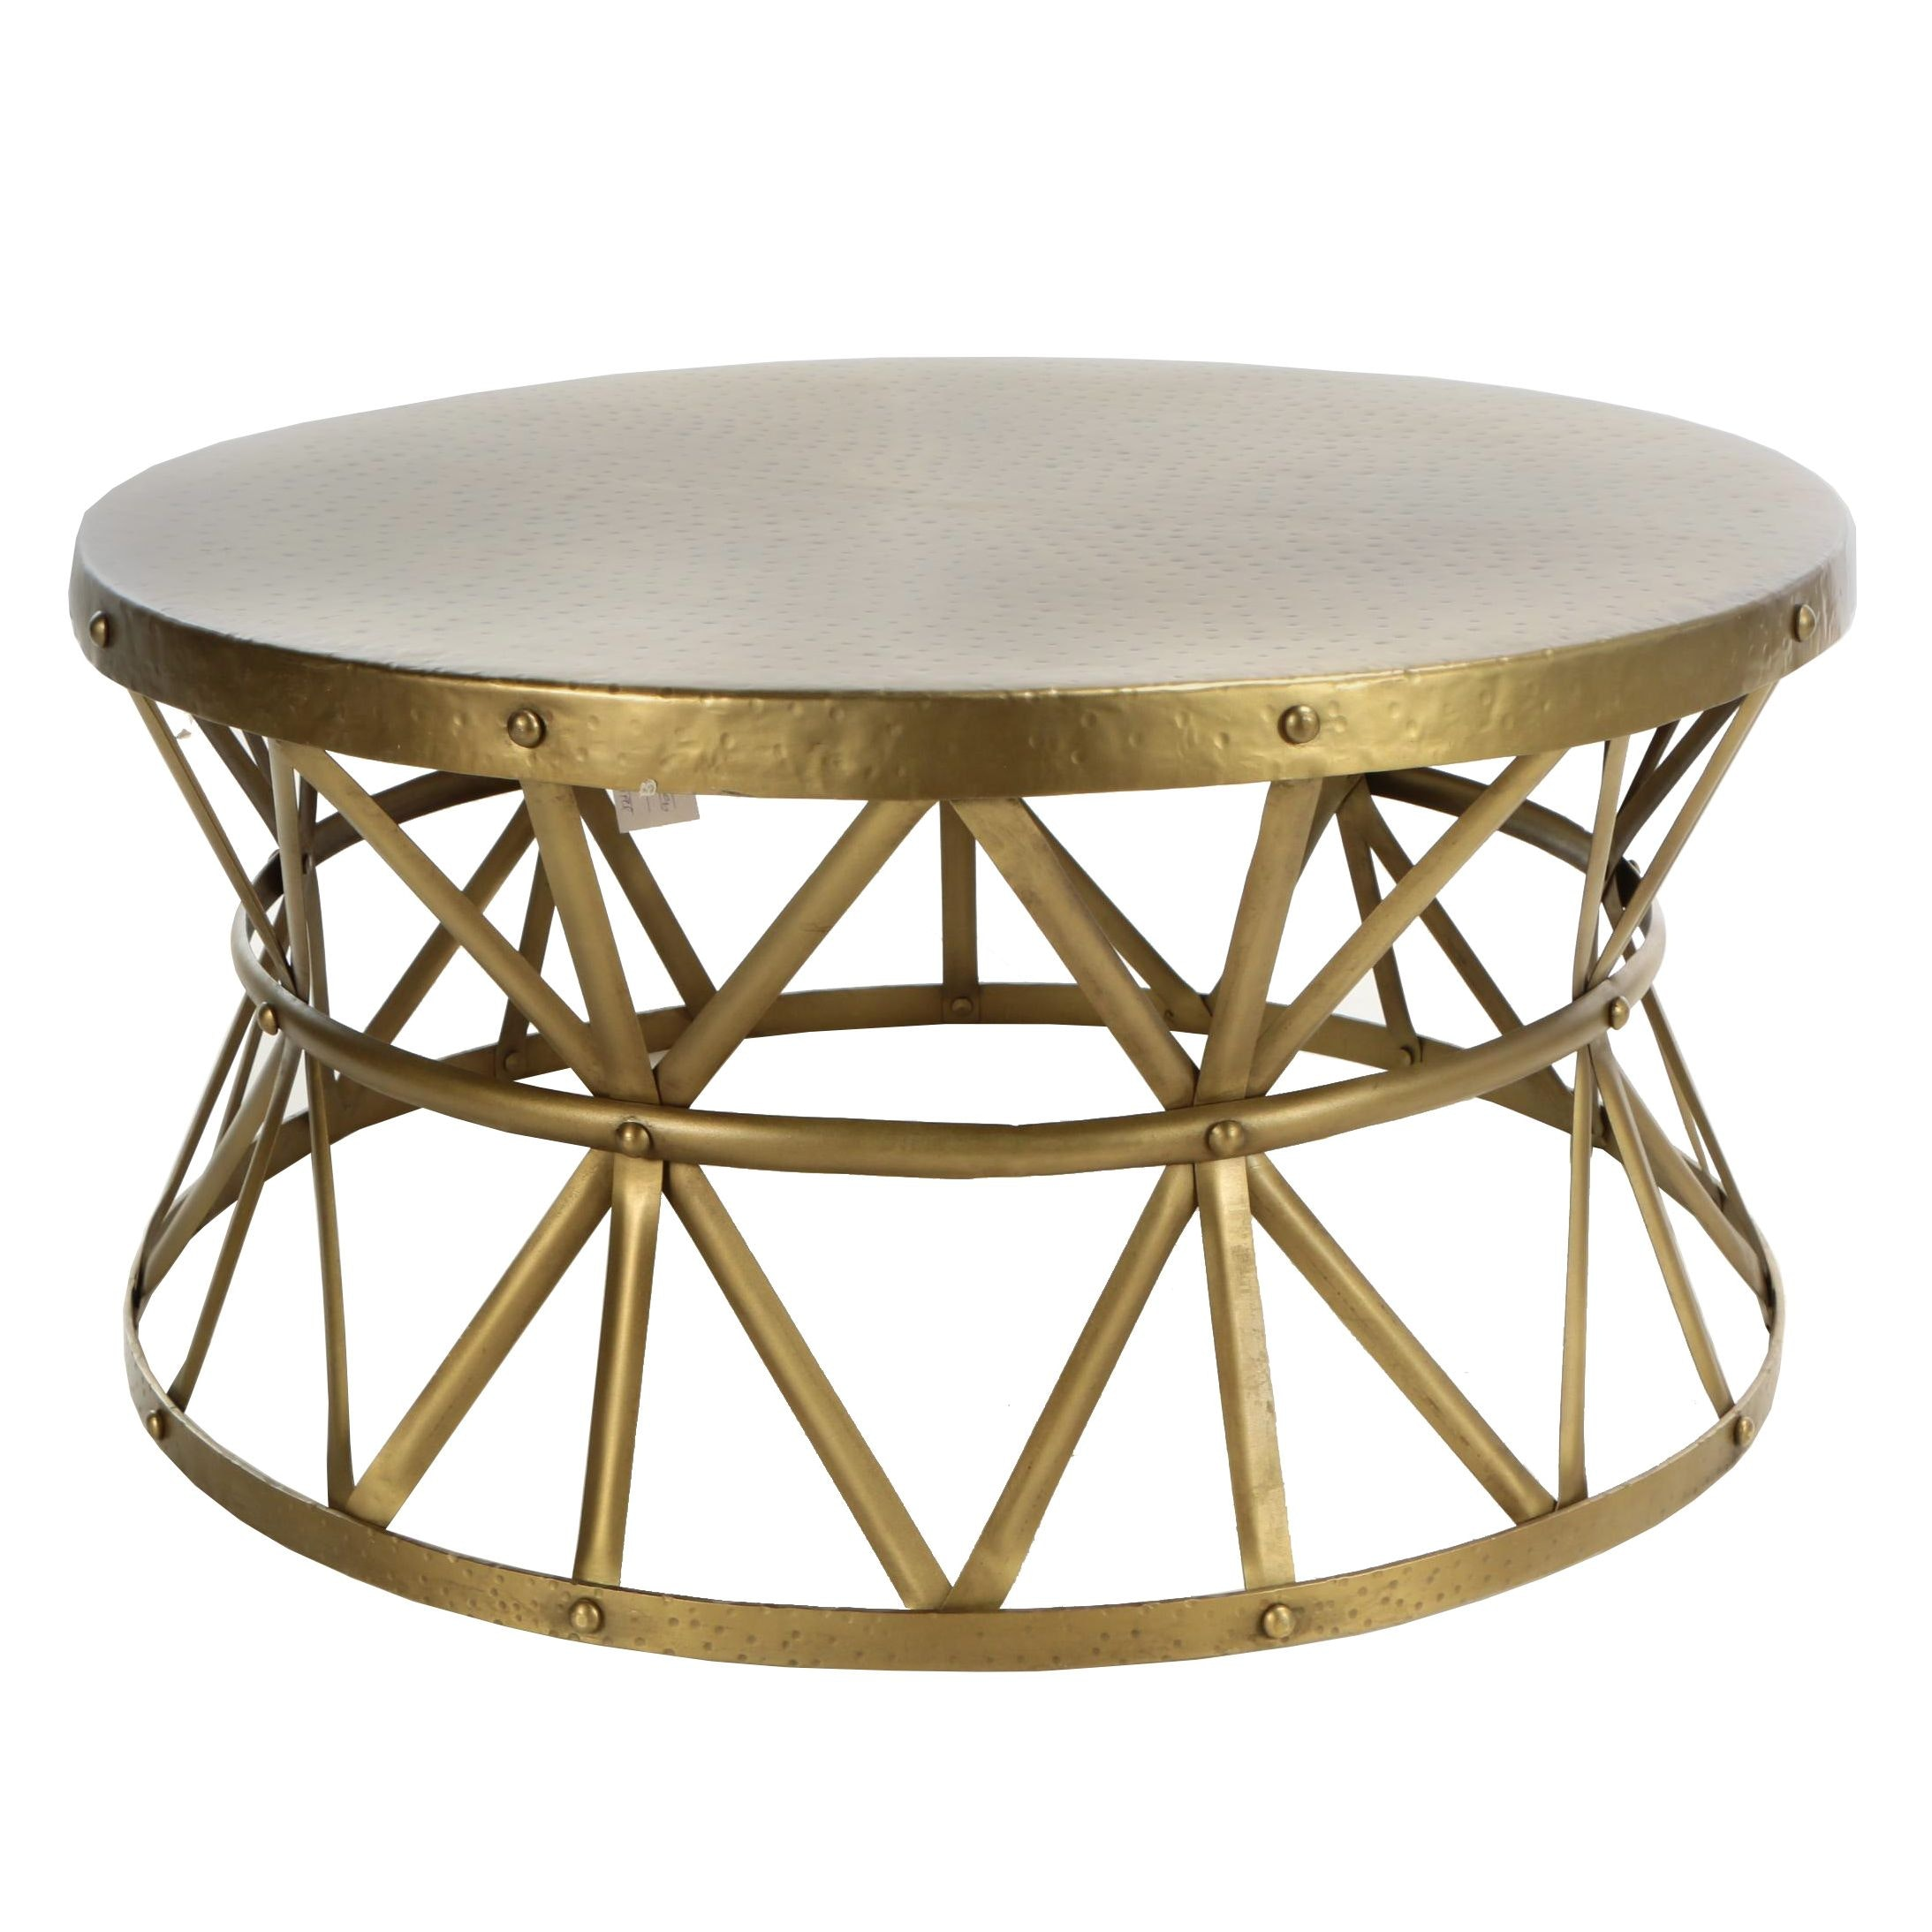 "Industrial Style ""Metal Smith's"" Gold Tone Metal Drum Coffee Table"